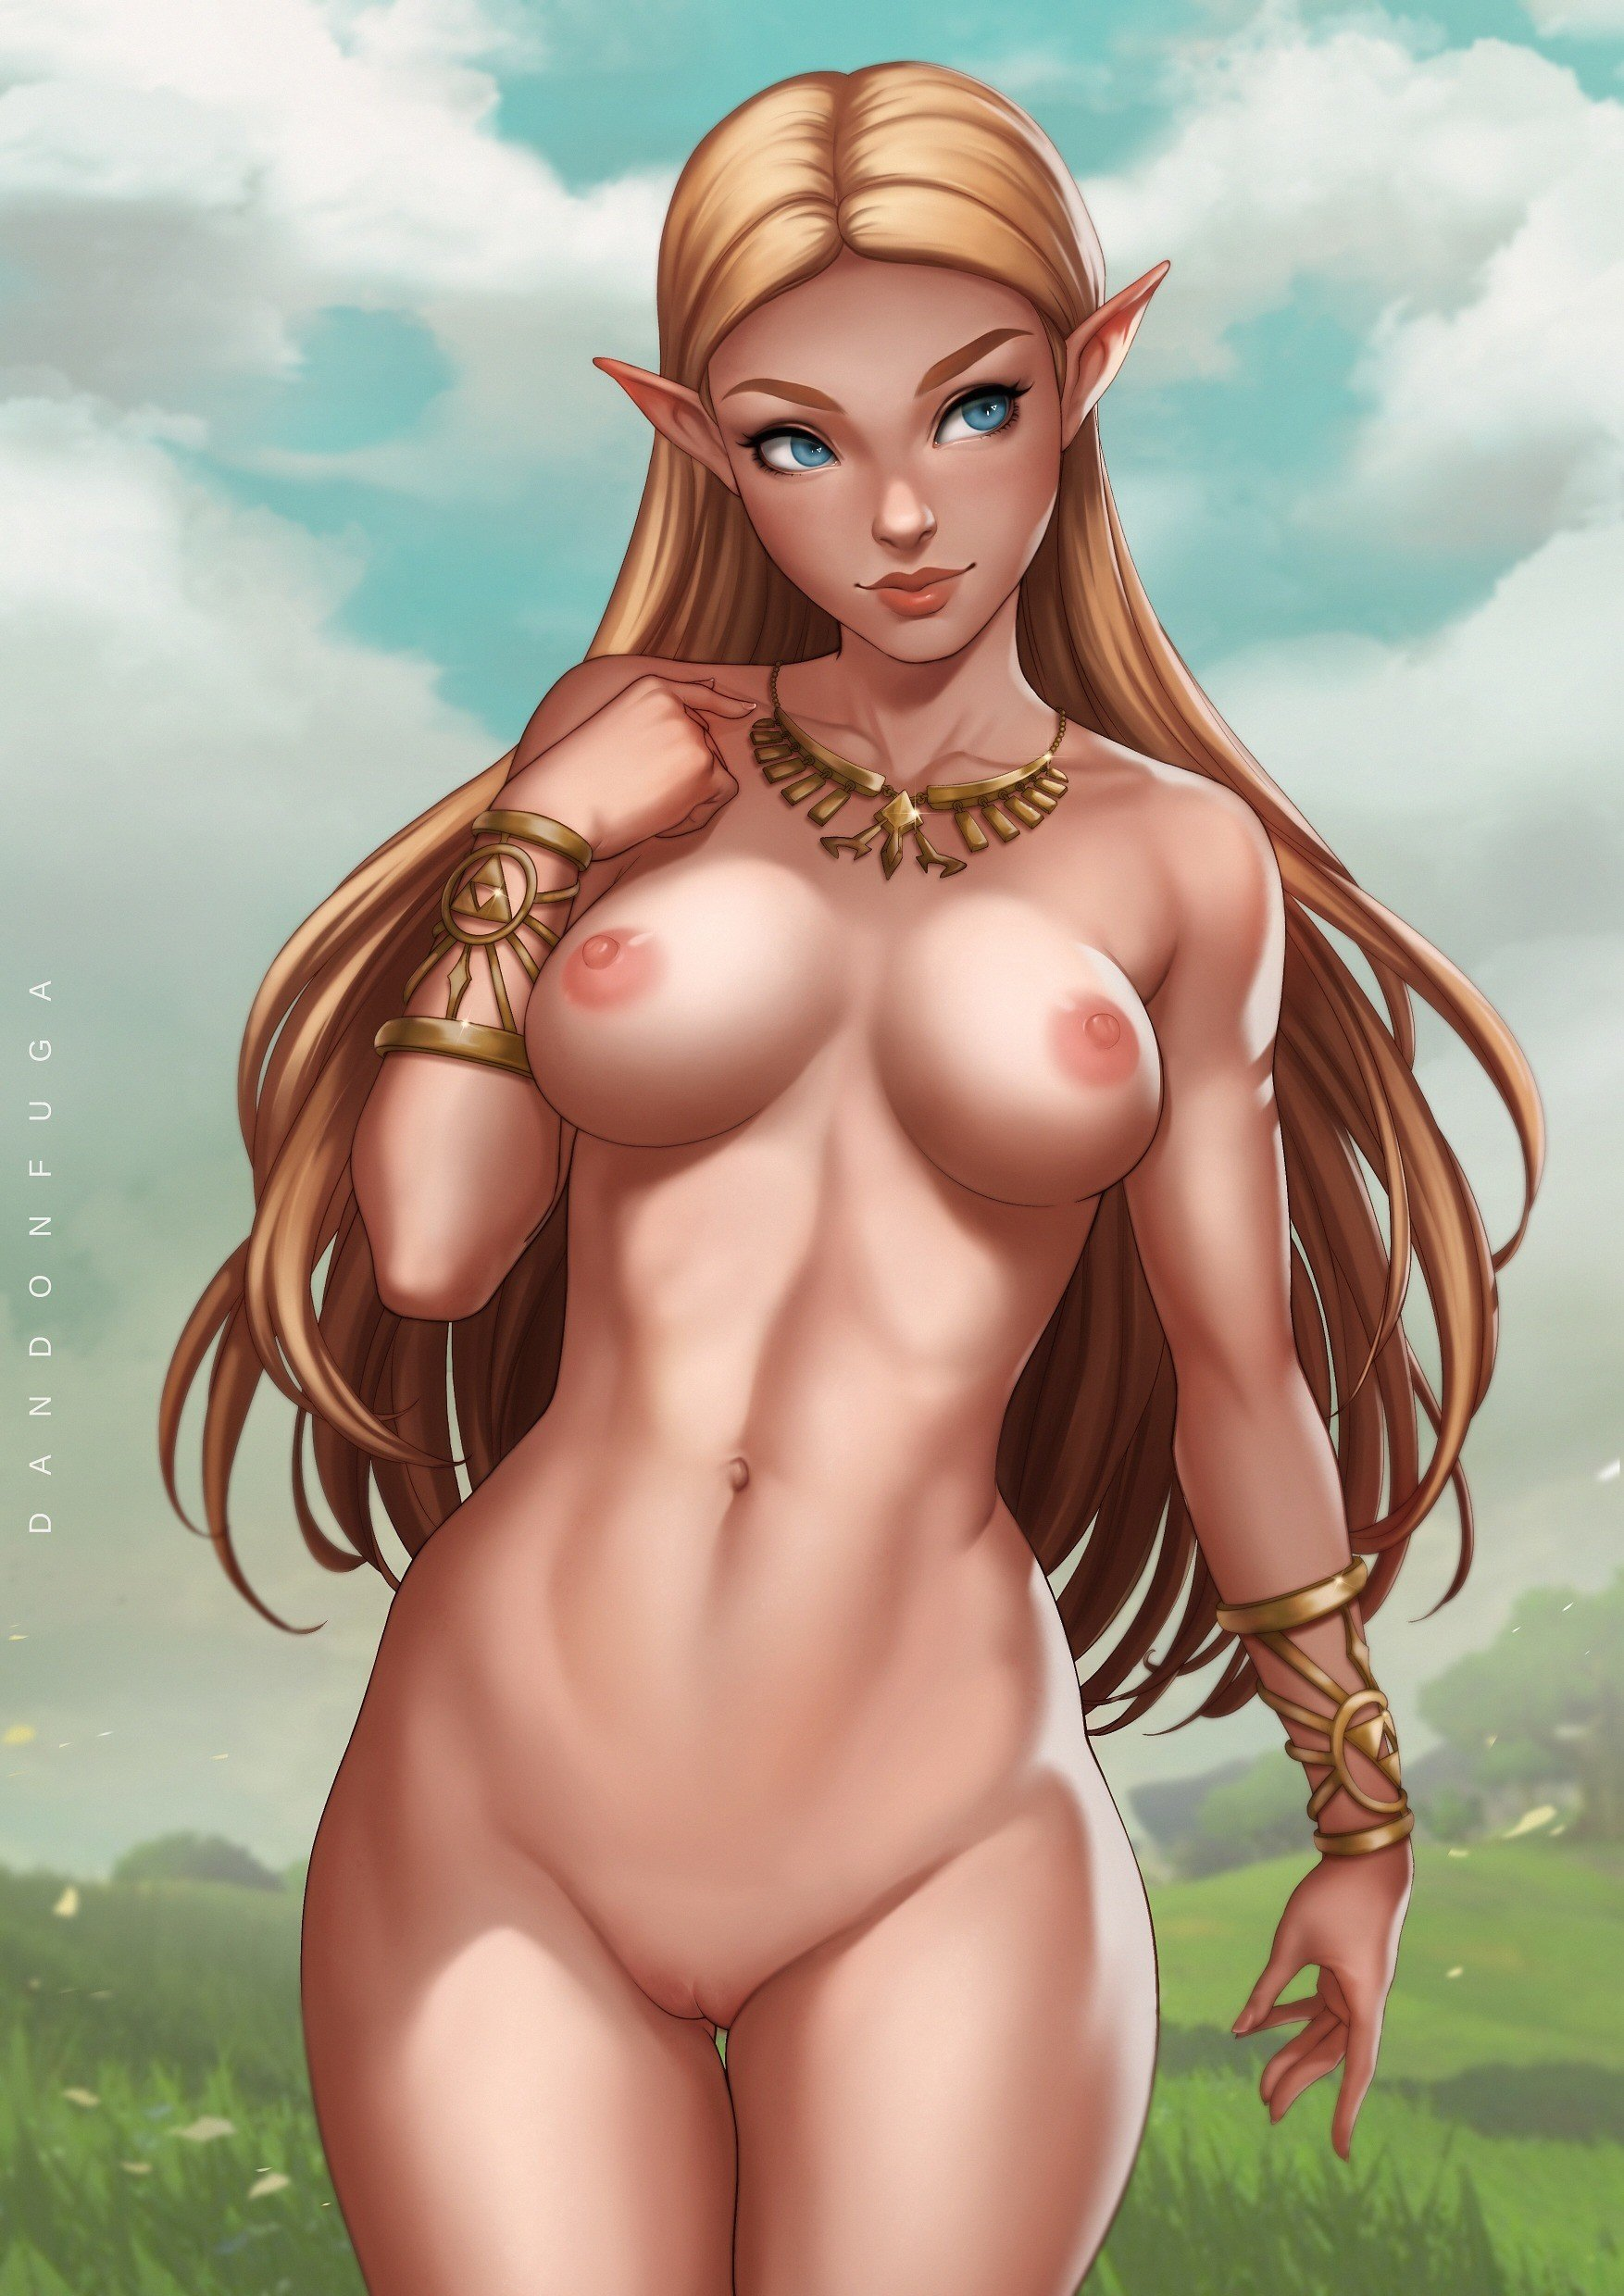 hot nude photos of zelda